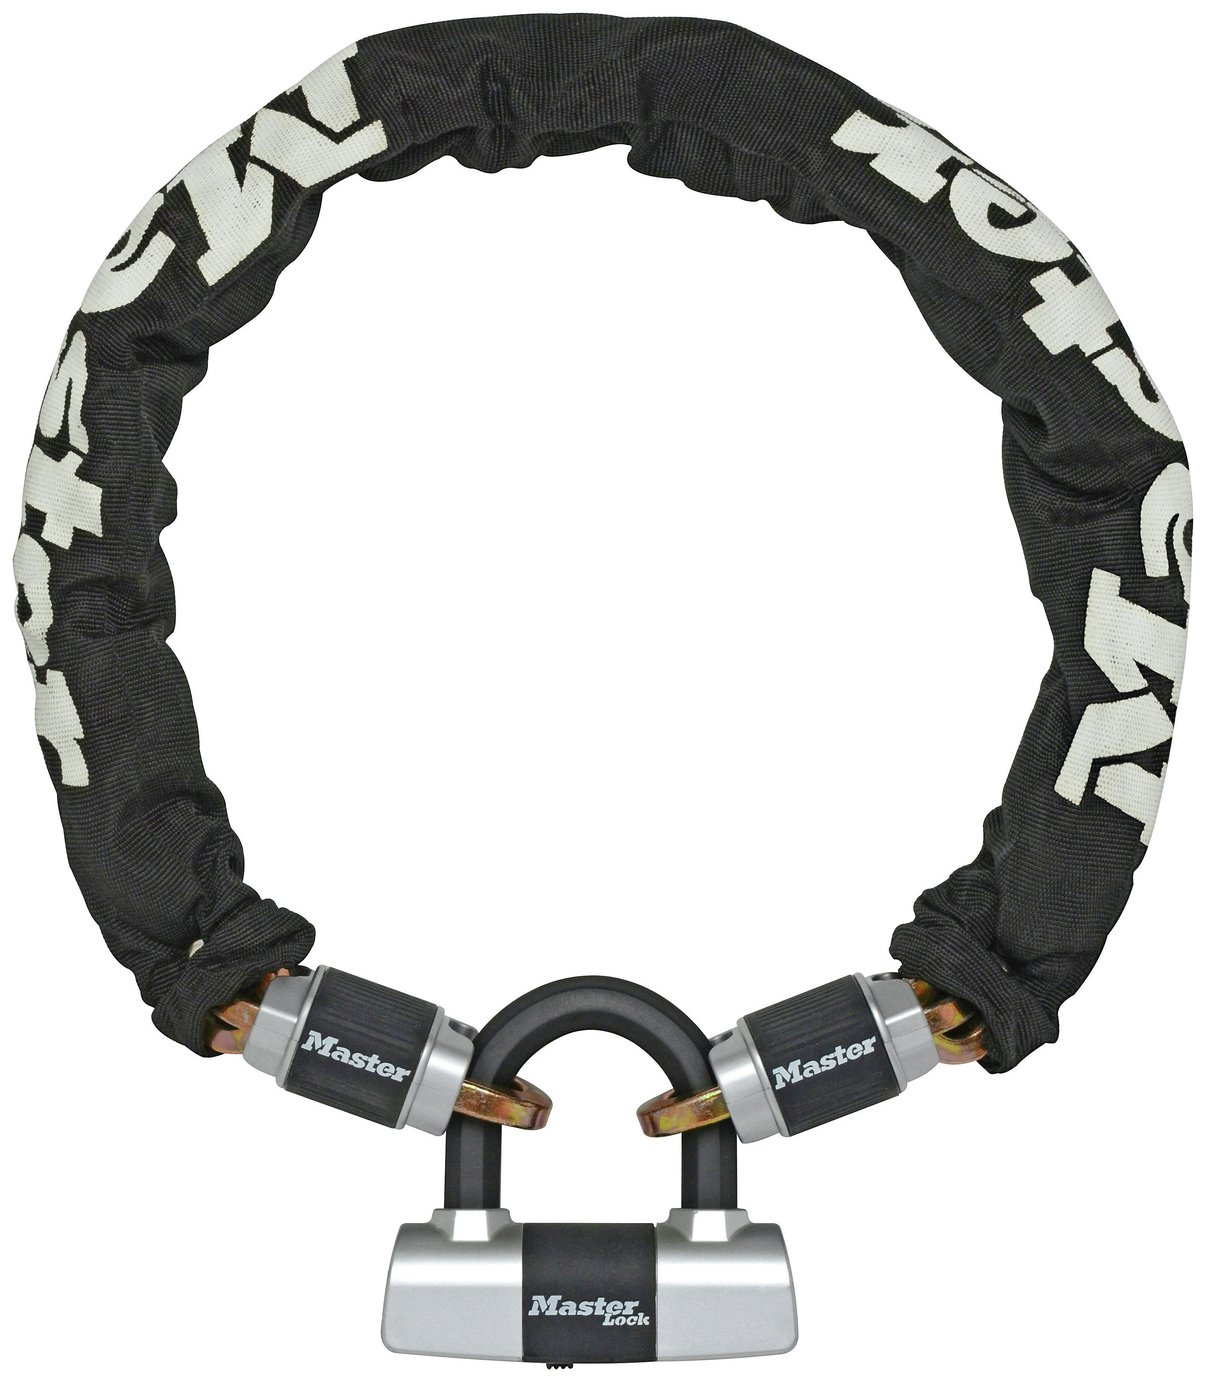 Image of Master Lock Mini D & Bike Lock Chain Set - 1m